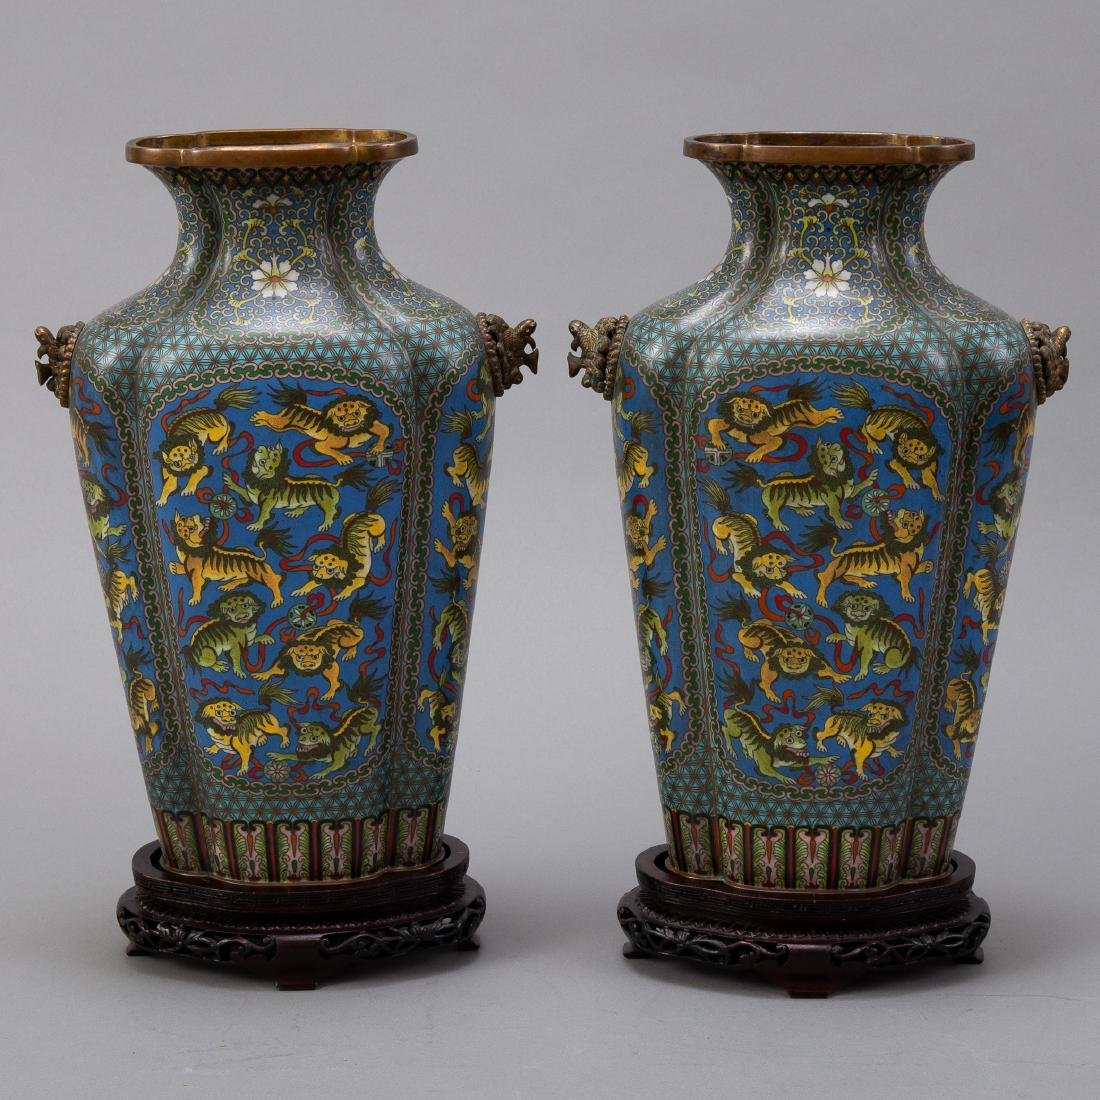 Pr 20th c. Japanese Cloisonne Vases with Foo Dogs